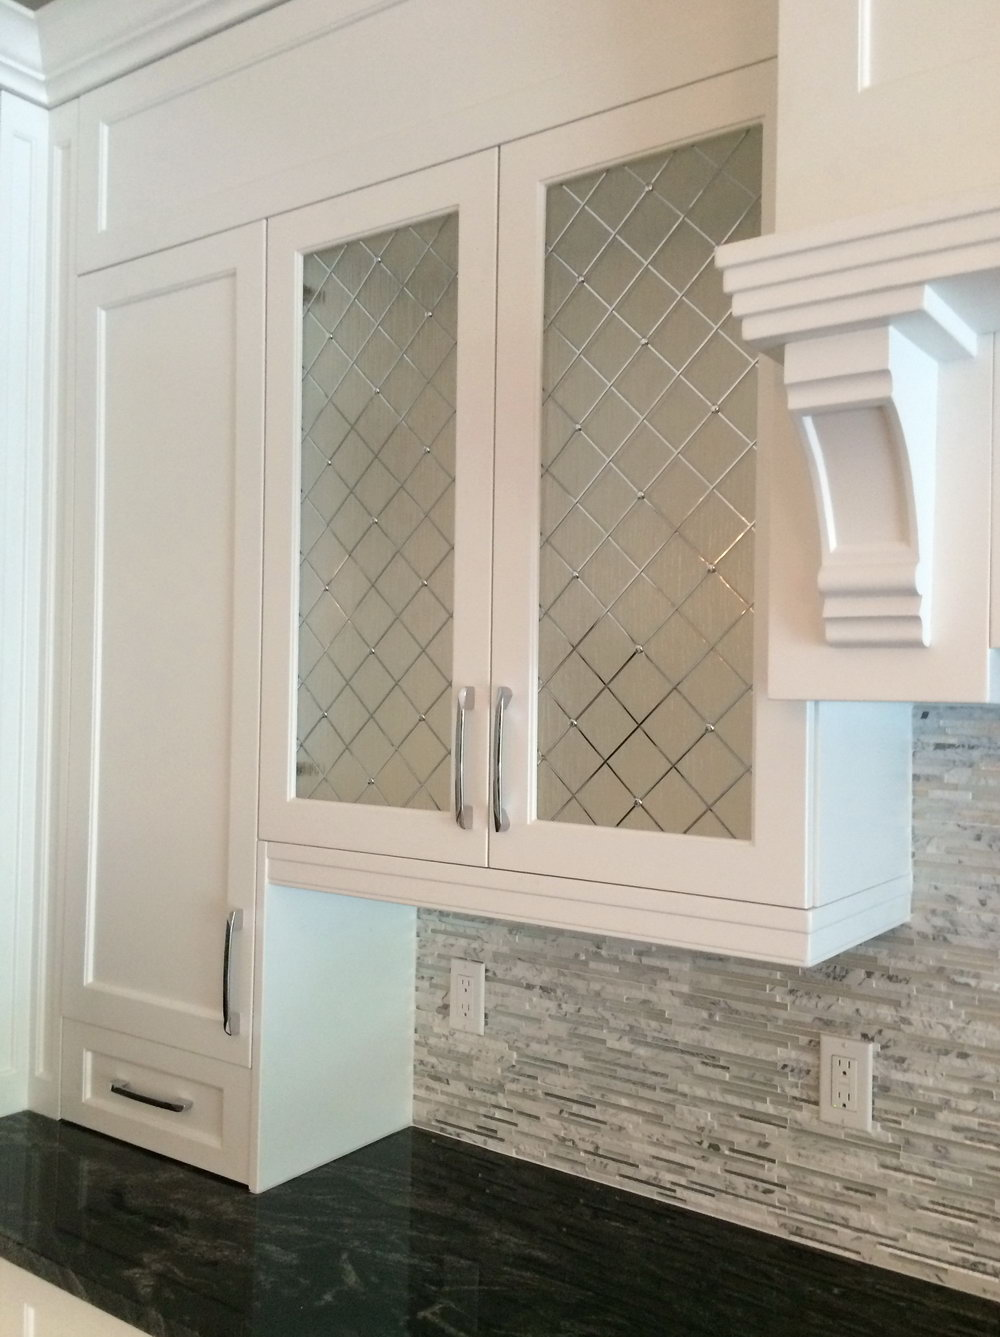 Kitchen Cabinet Doors With Frosted Glass Inserts